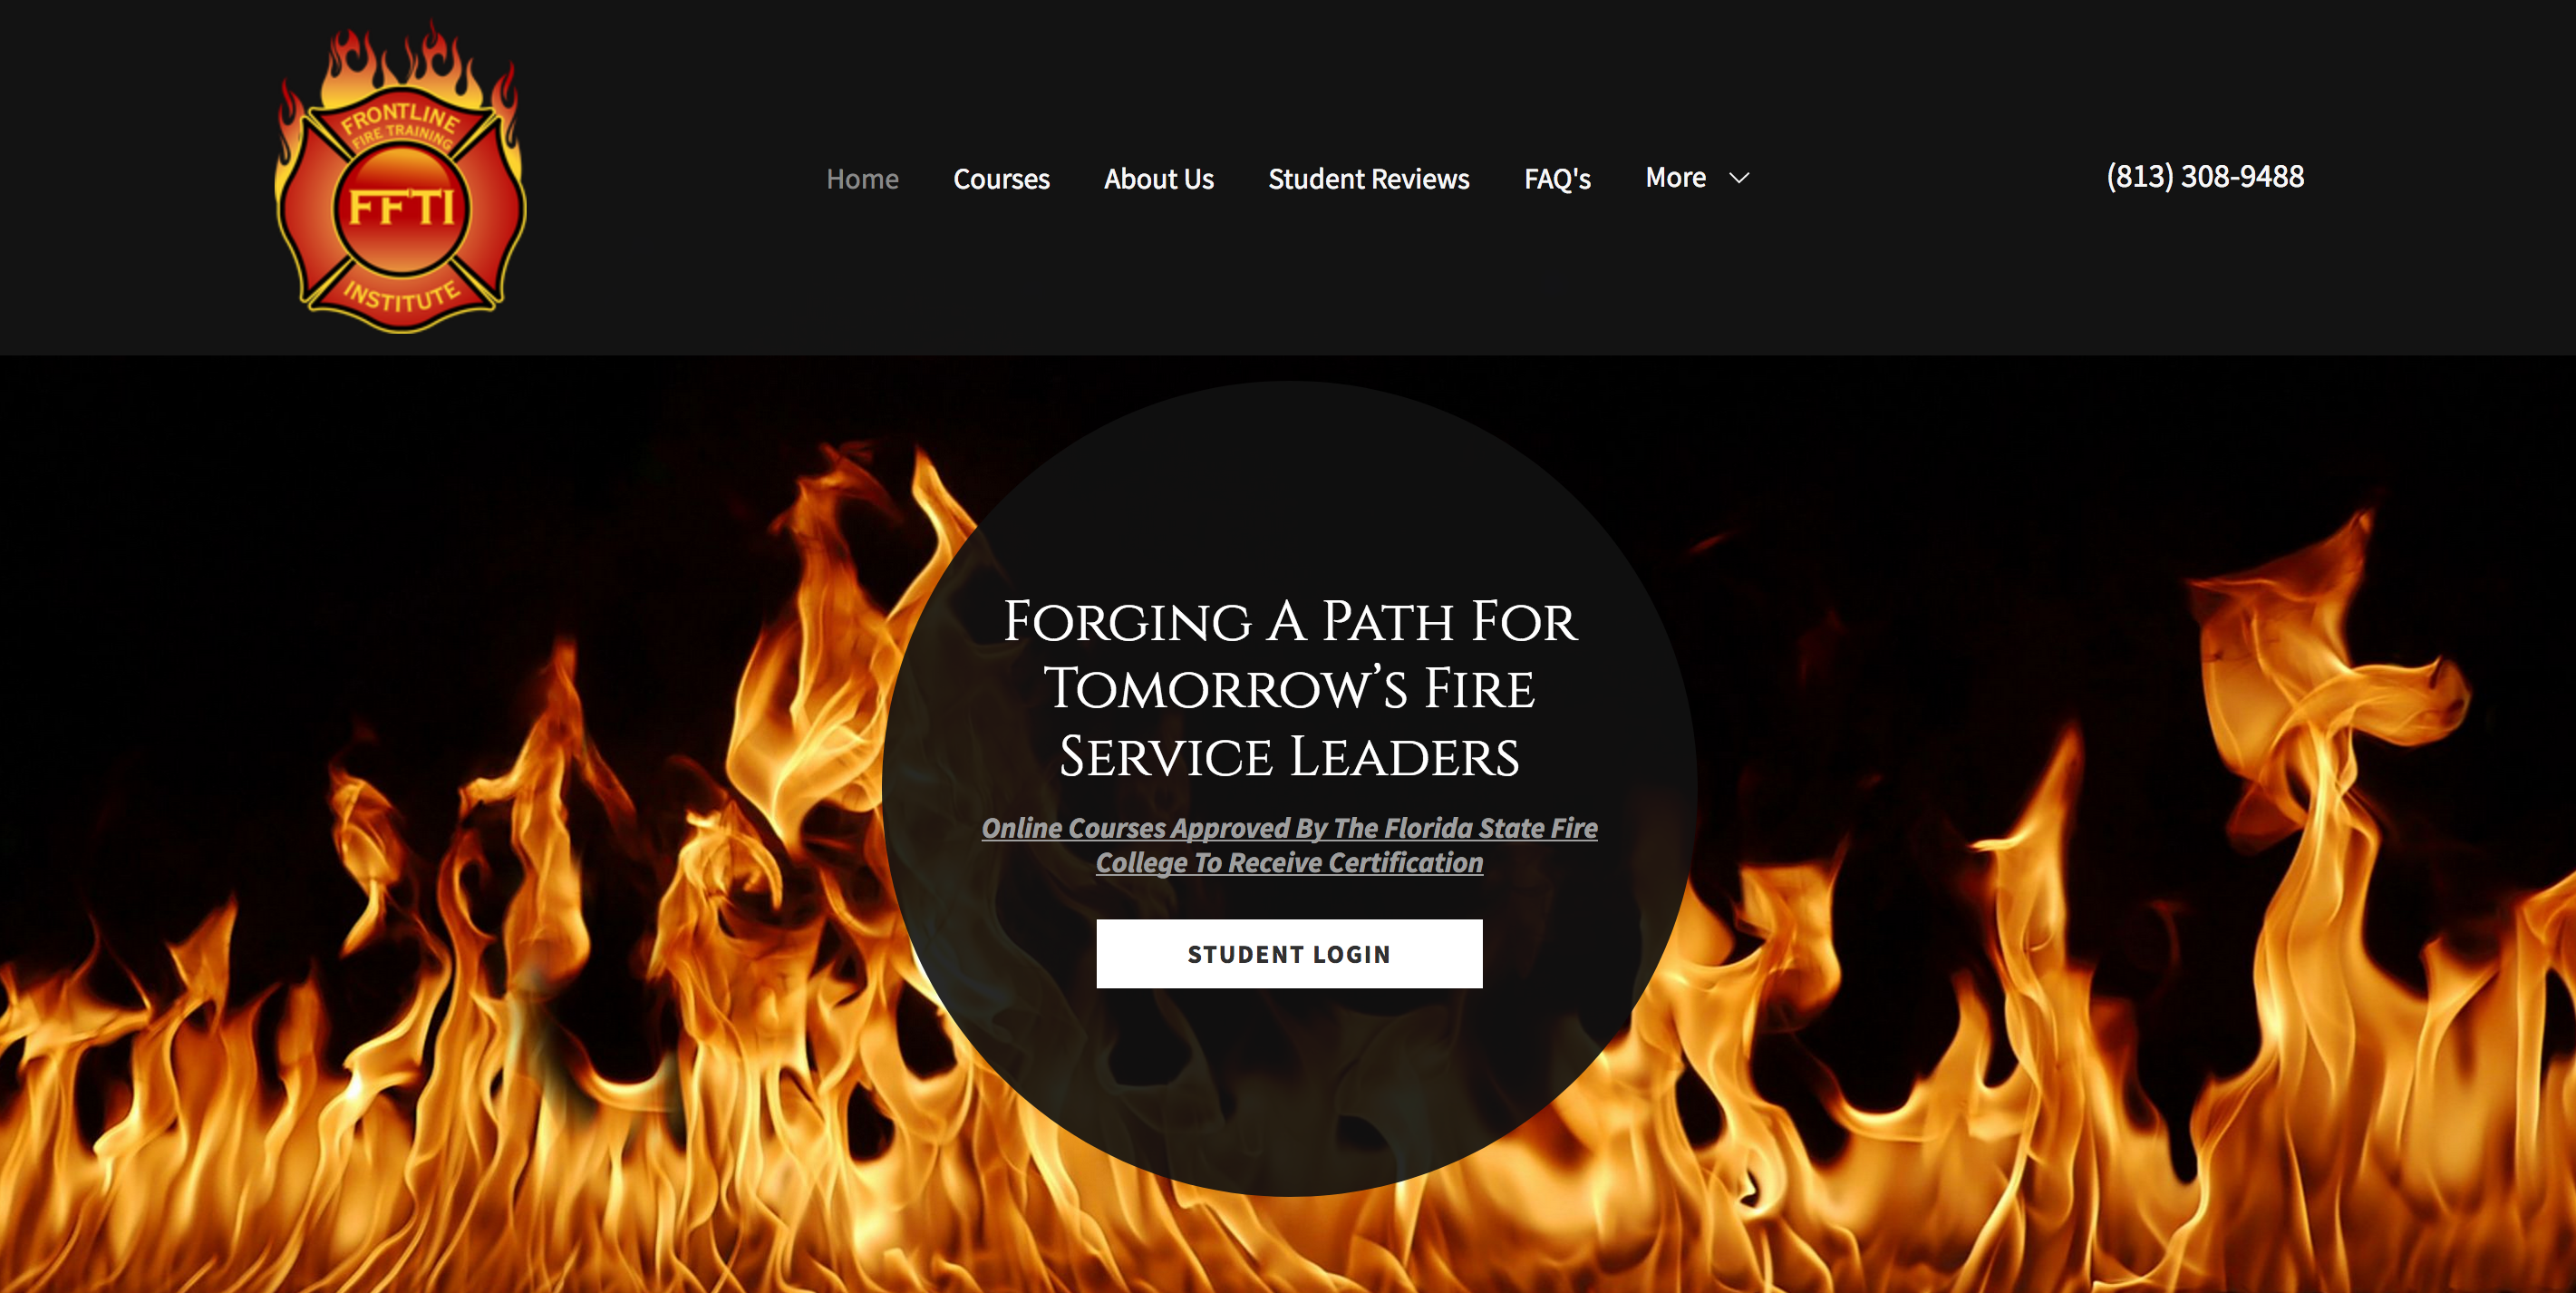 website of fire safety company selling firefighting fire safety online courses with LMS eLearning platform